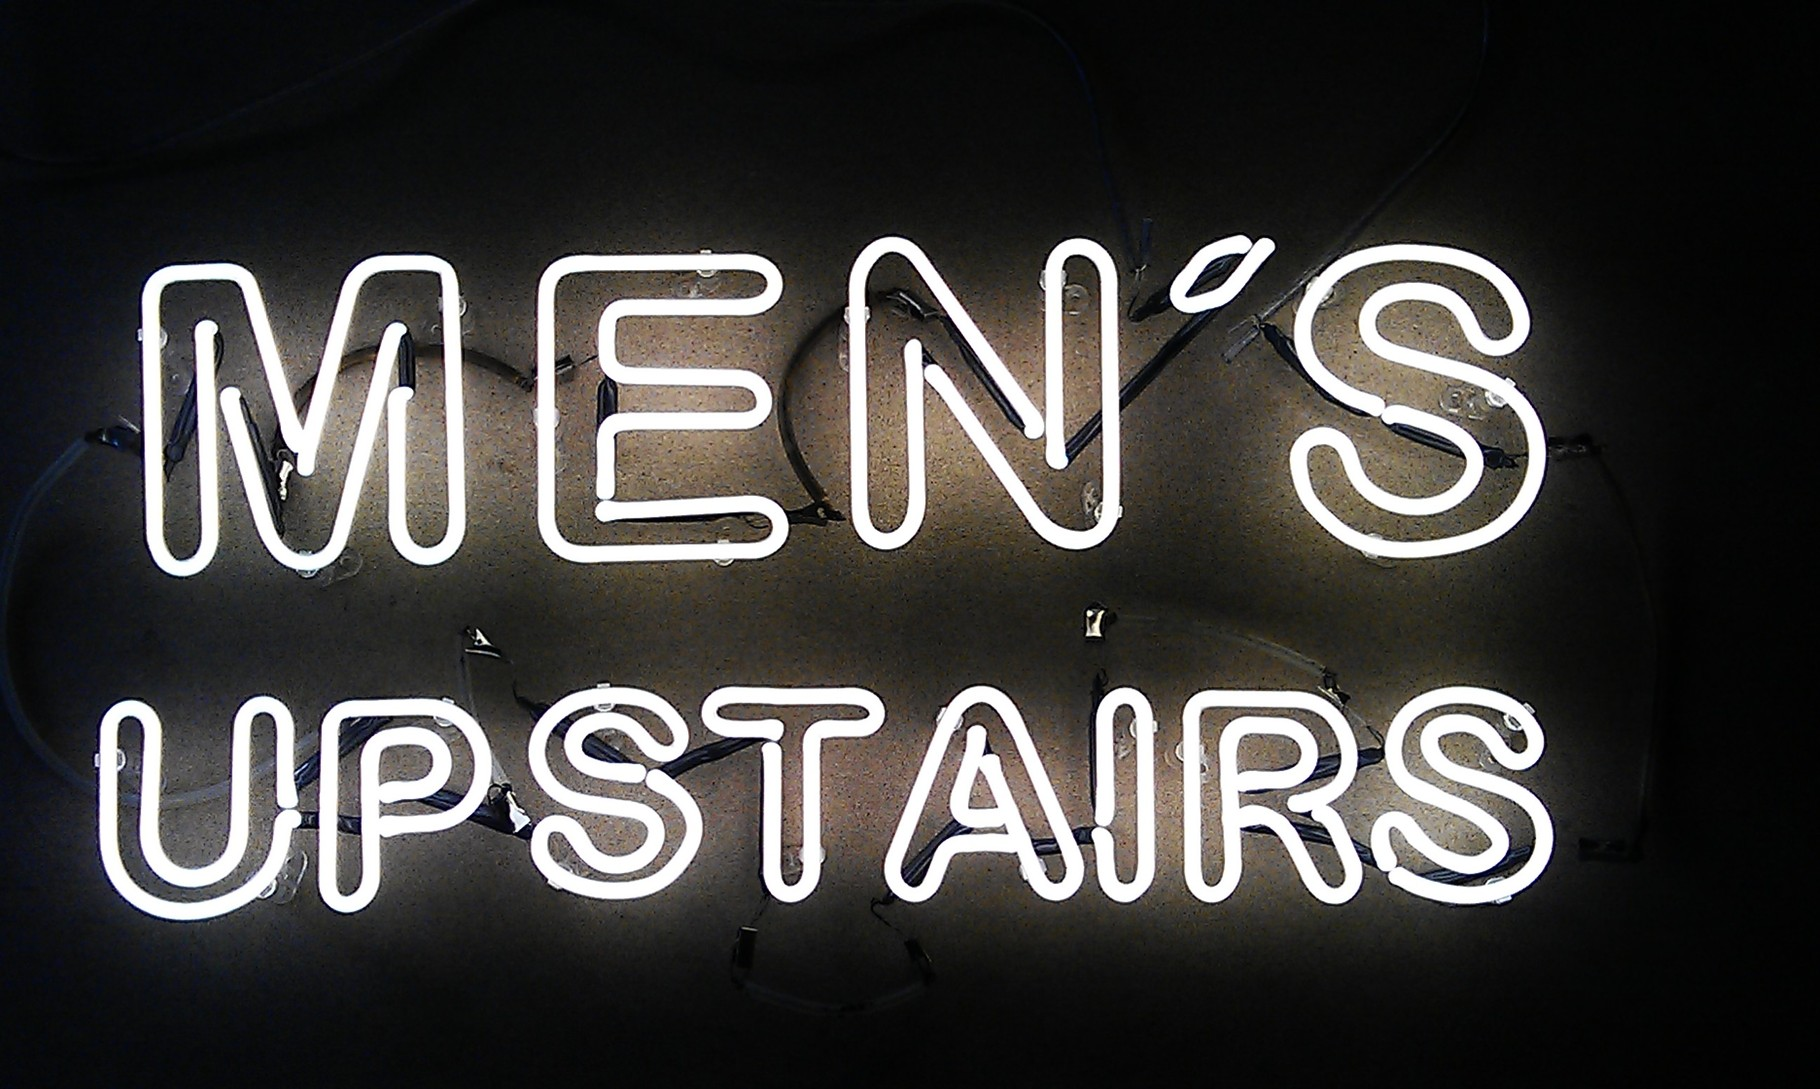 Neonschrift : Men's upstairs // Neonjoecks Berlin